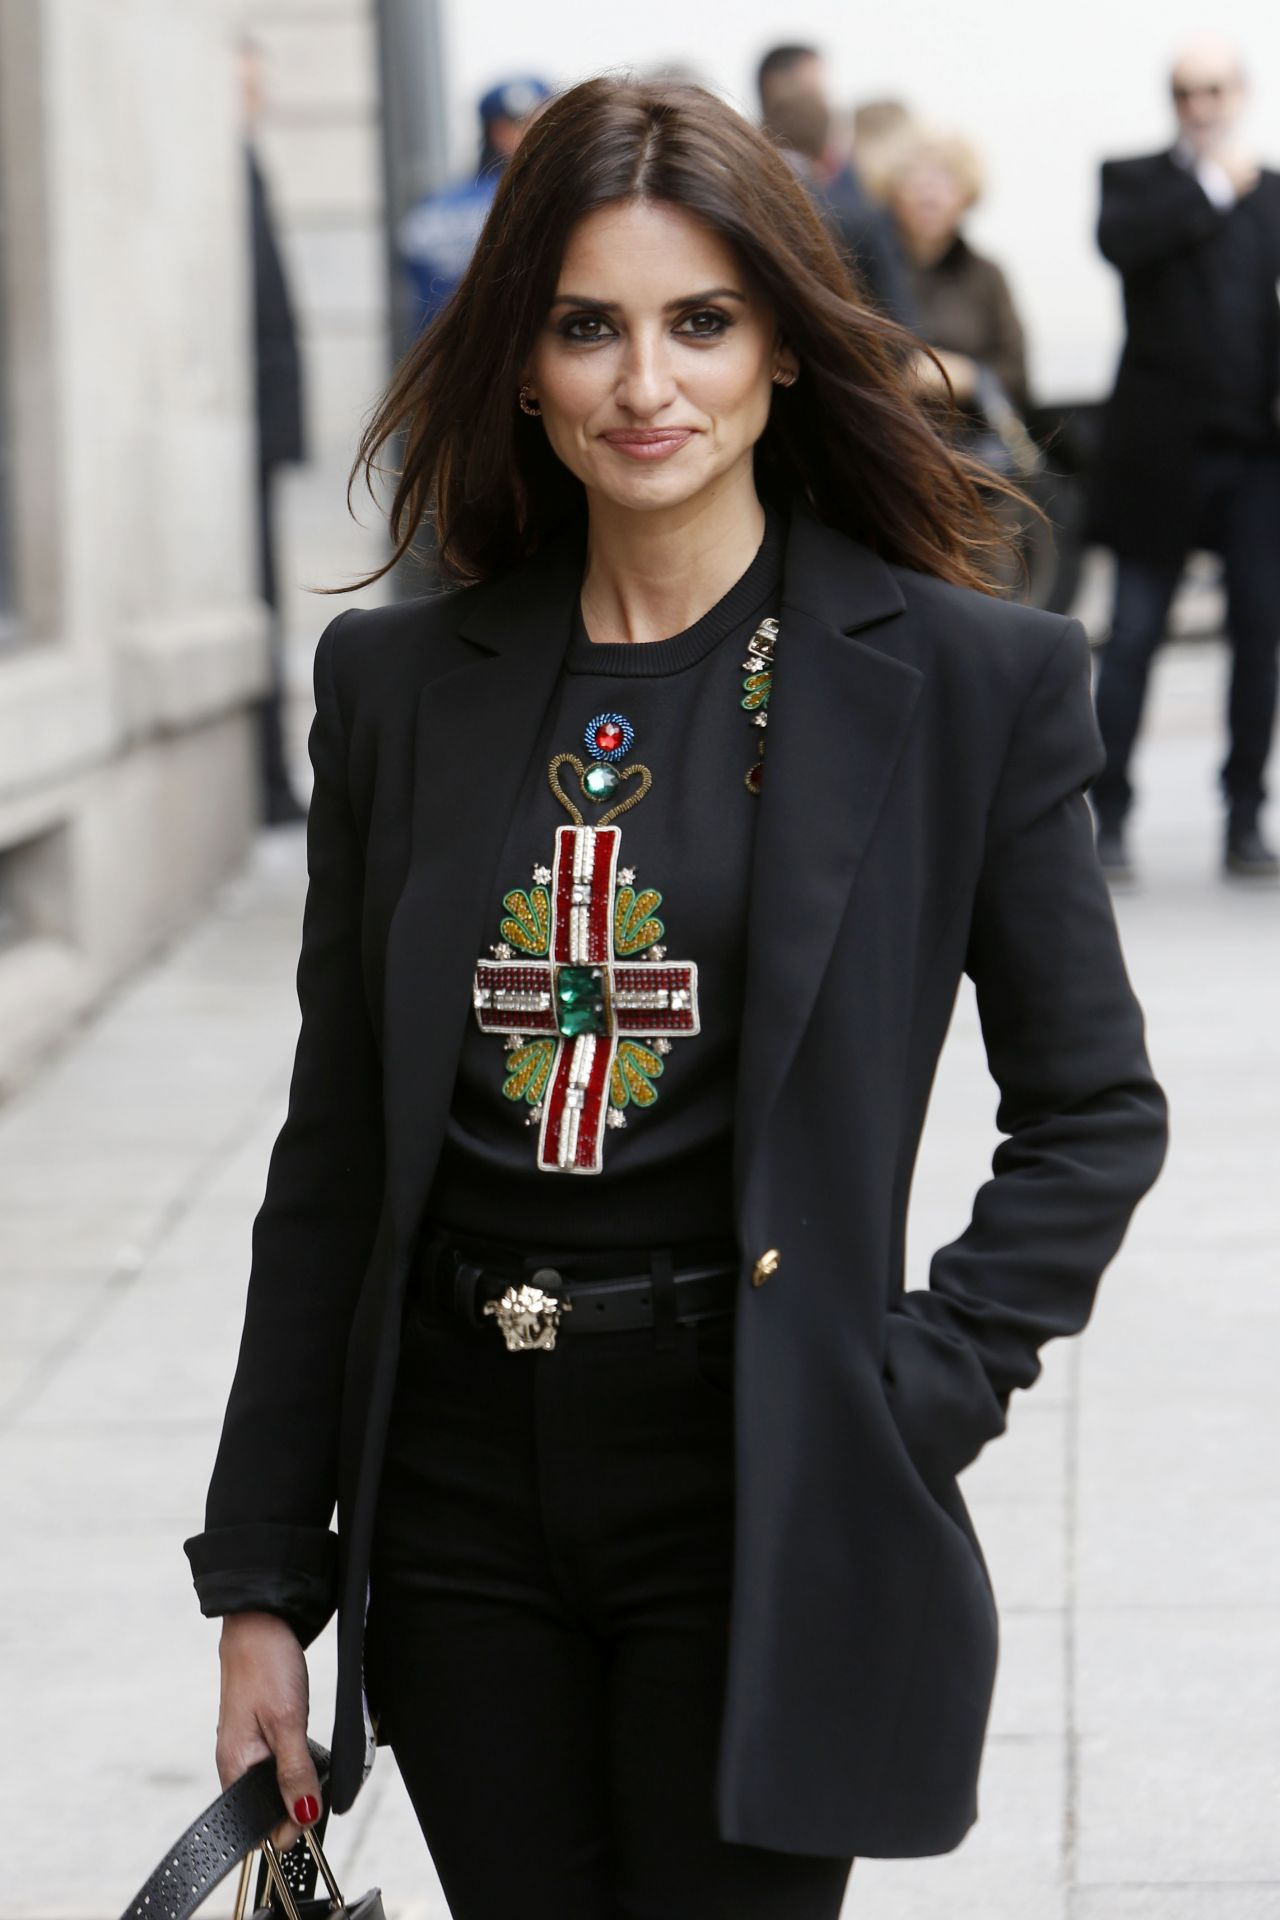 http://celebmafia.com/wp-content/uploads/2018/04/penelope-cruz-at-ceremony-of-delivery-the-adoptive-son-title-by-the-city-of-madrid-april-2018-4.jpg